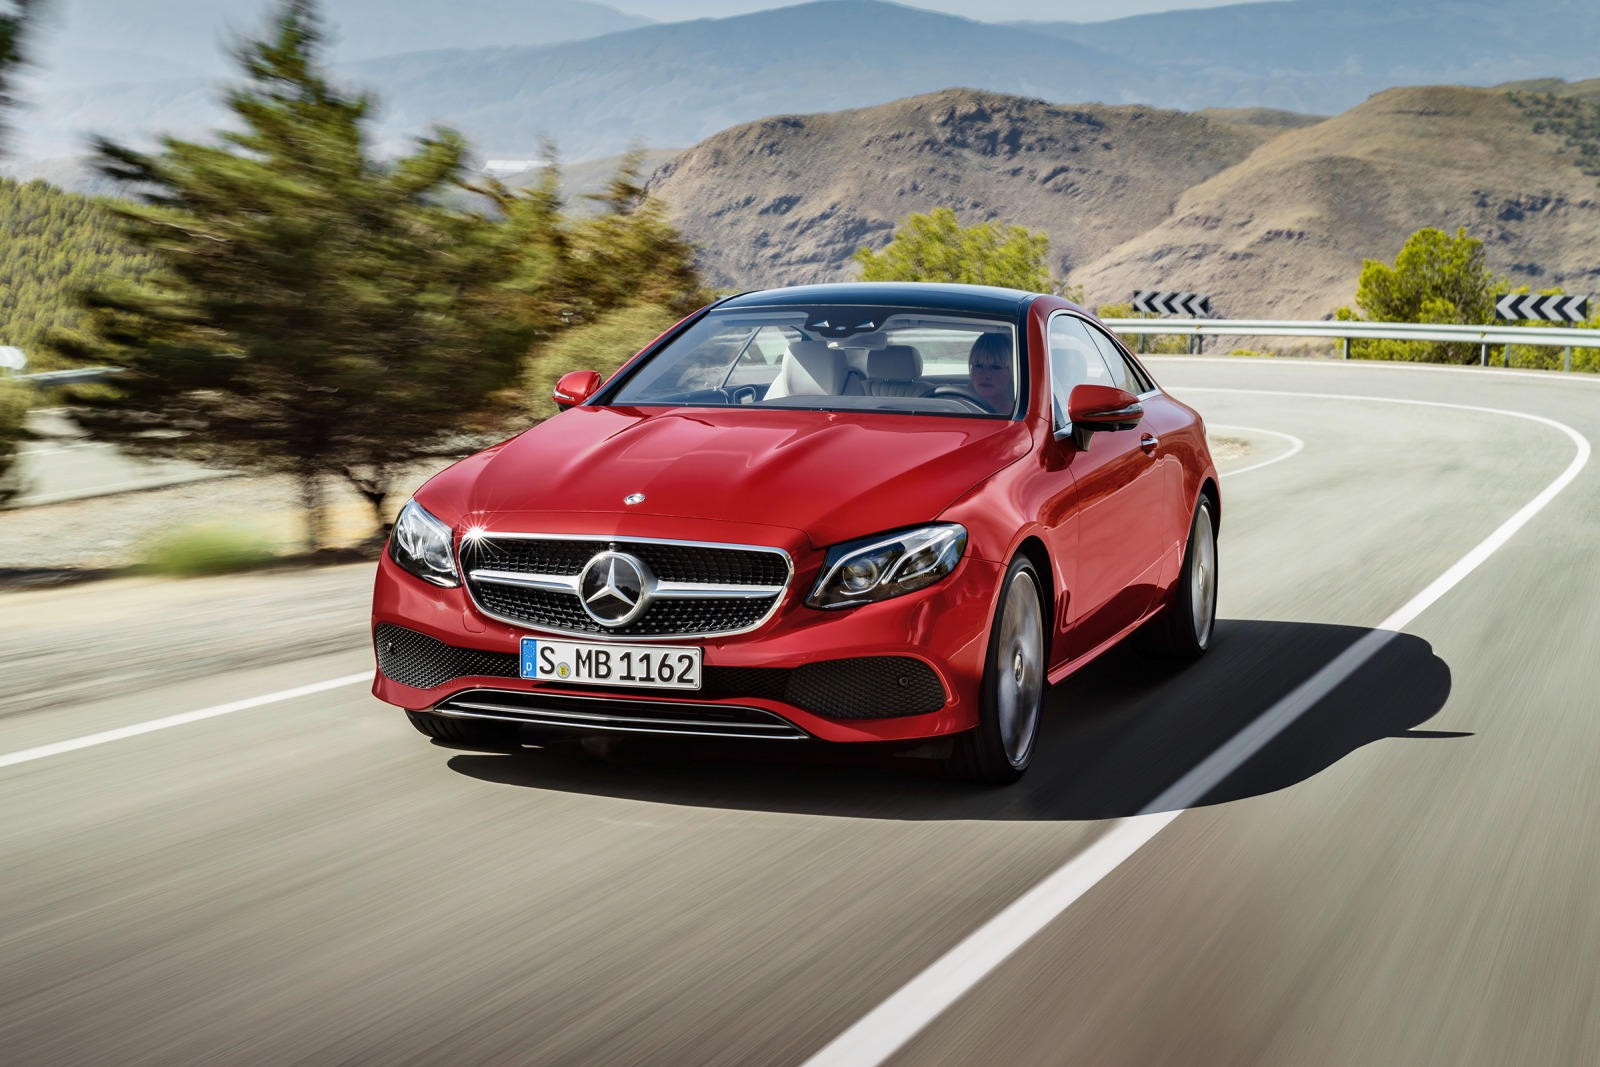 2020 Mercedes Benz E Class Coupe Review Trims Specs Price New Interior Features Exterior Design And Specifications Carbuzz